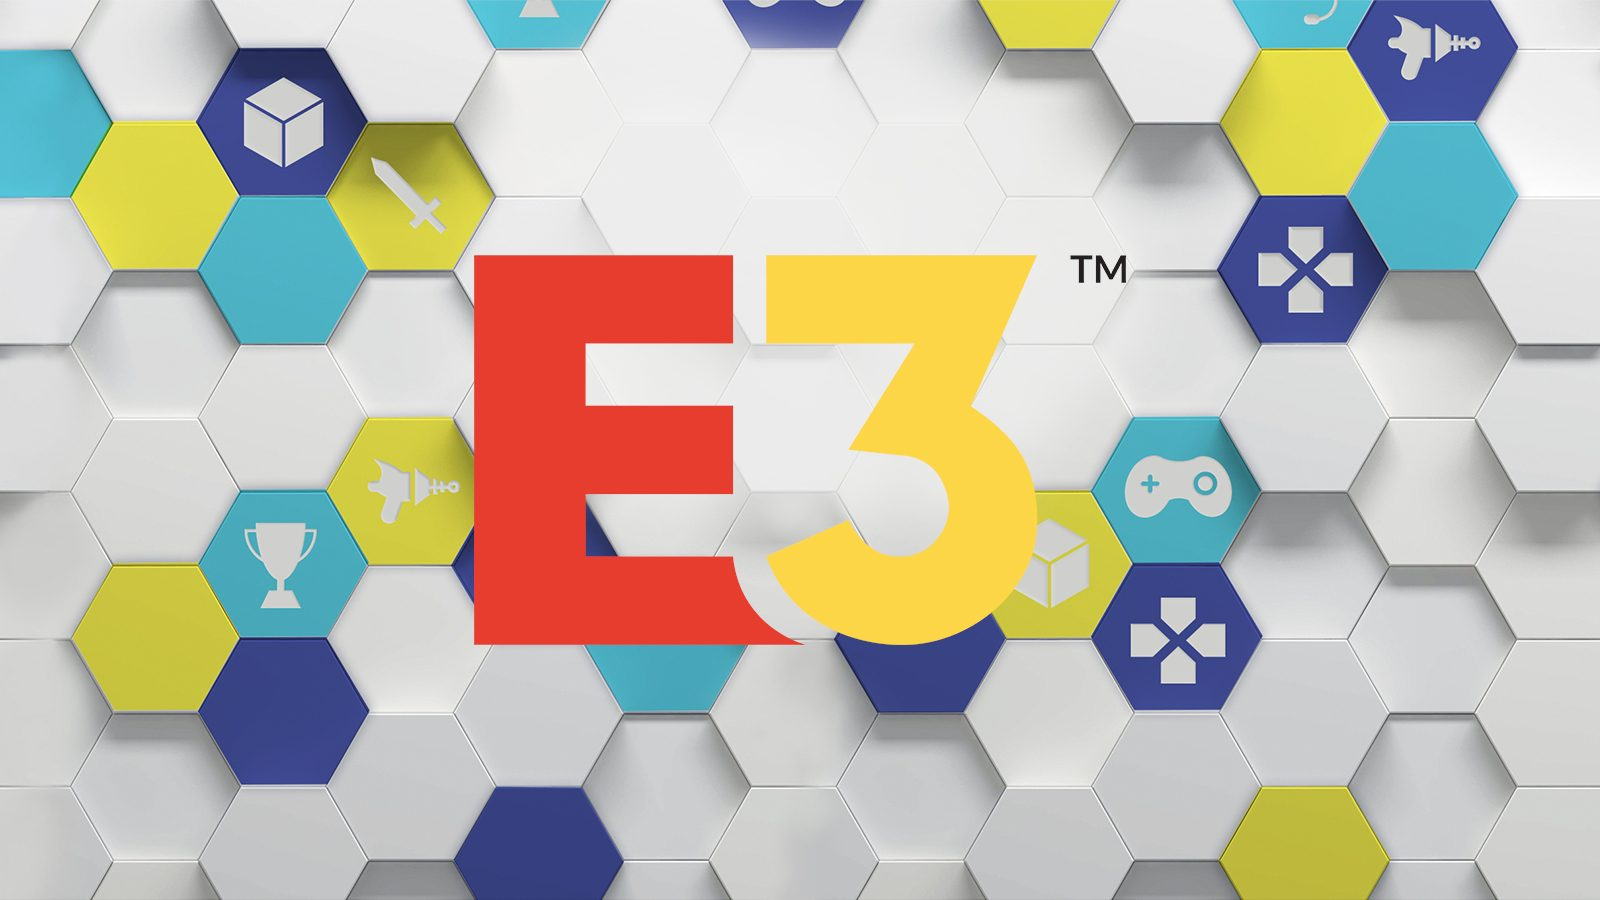 How You Can Experience E3 2021